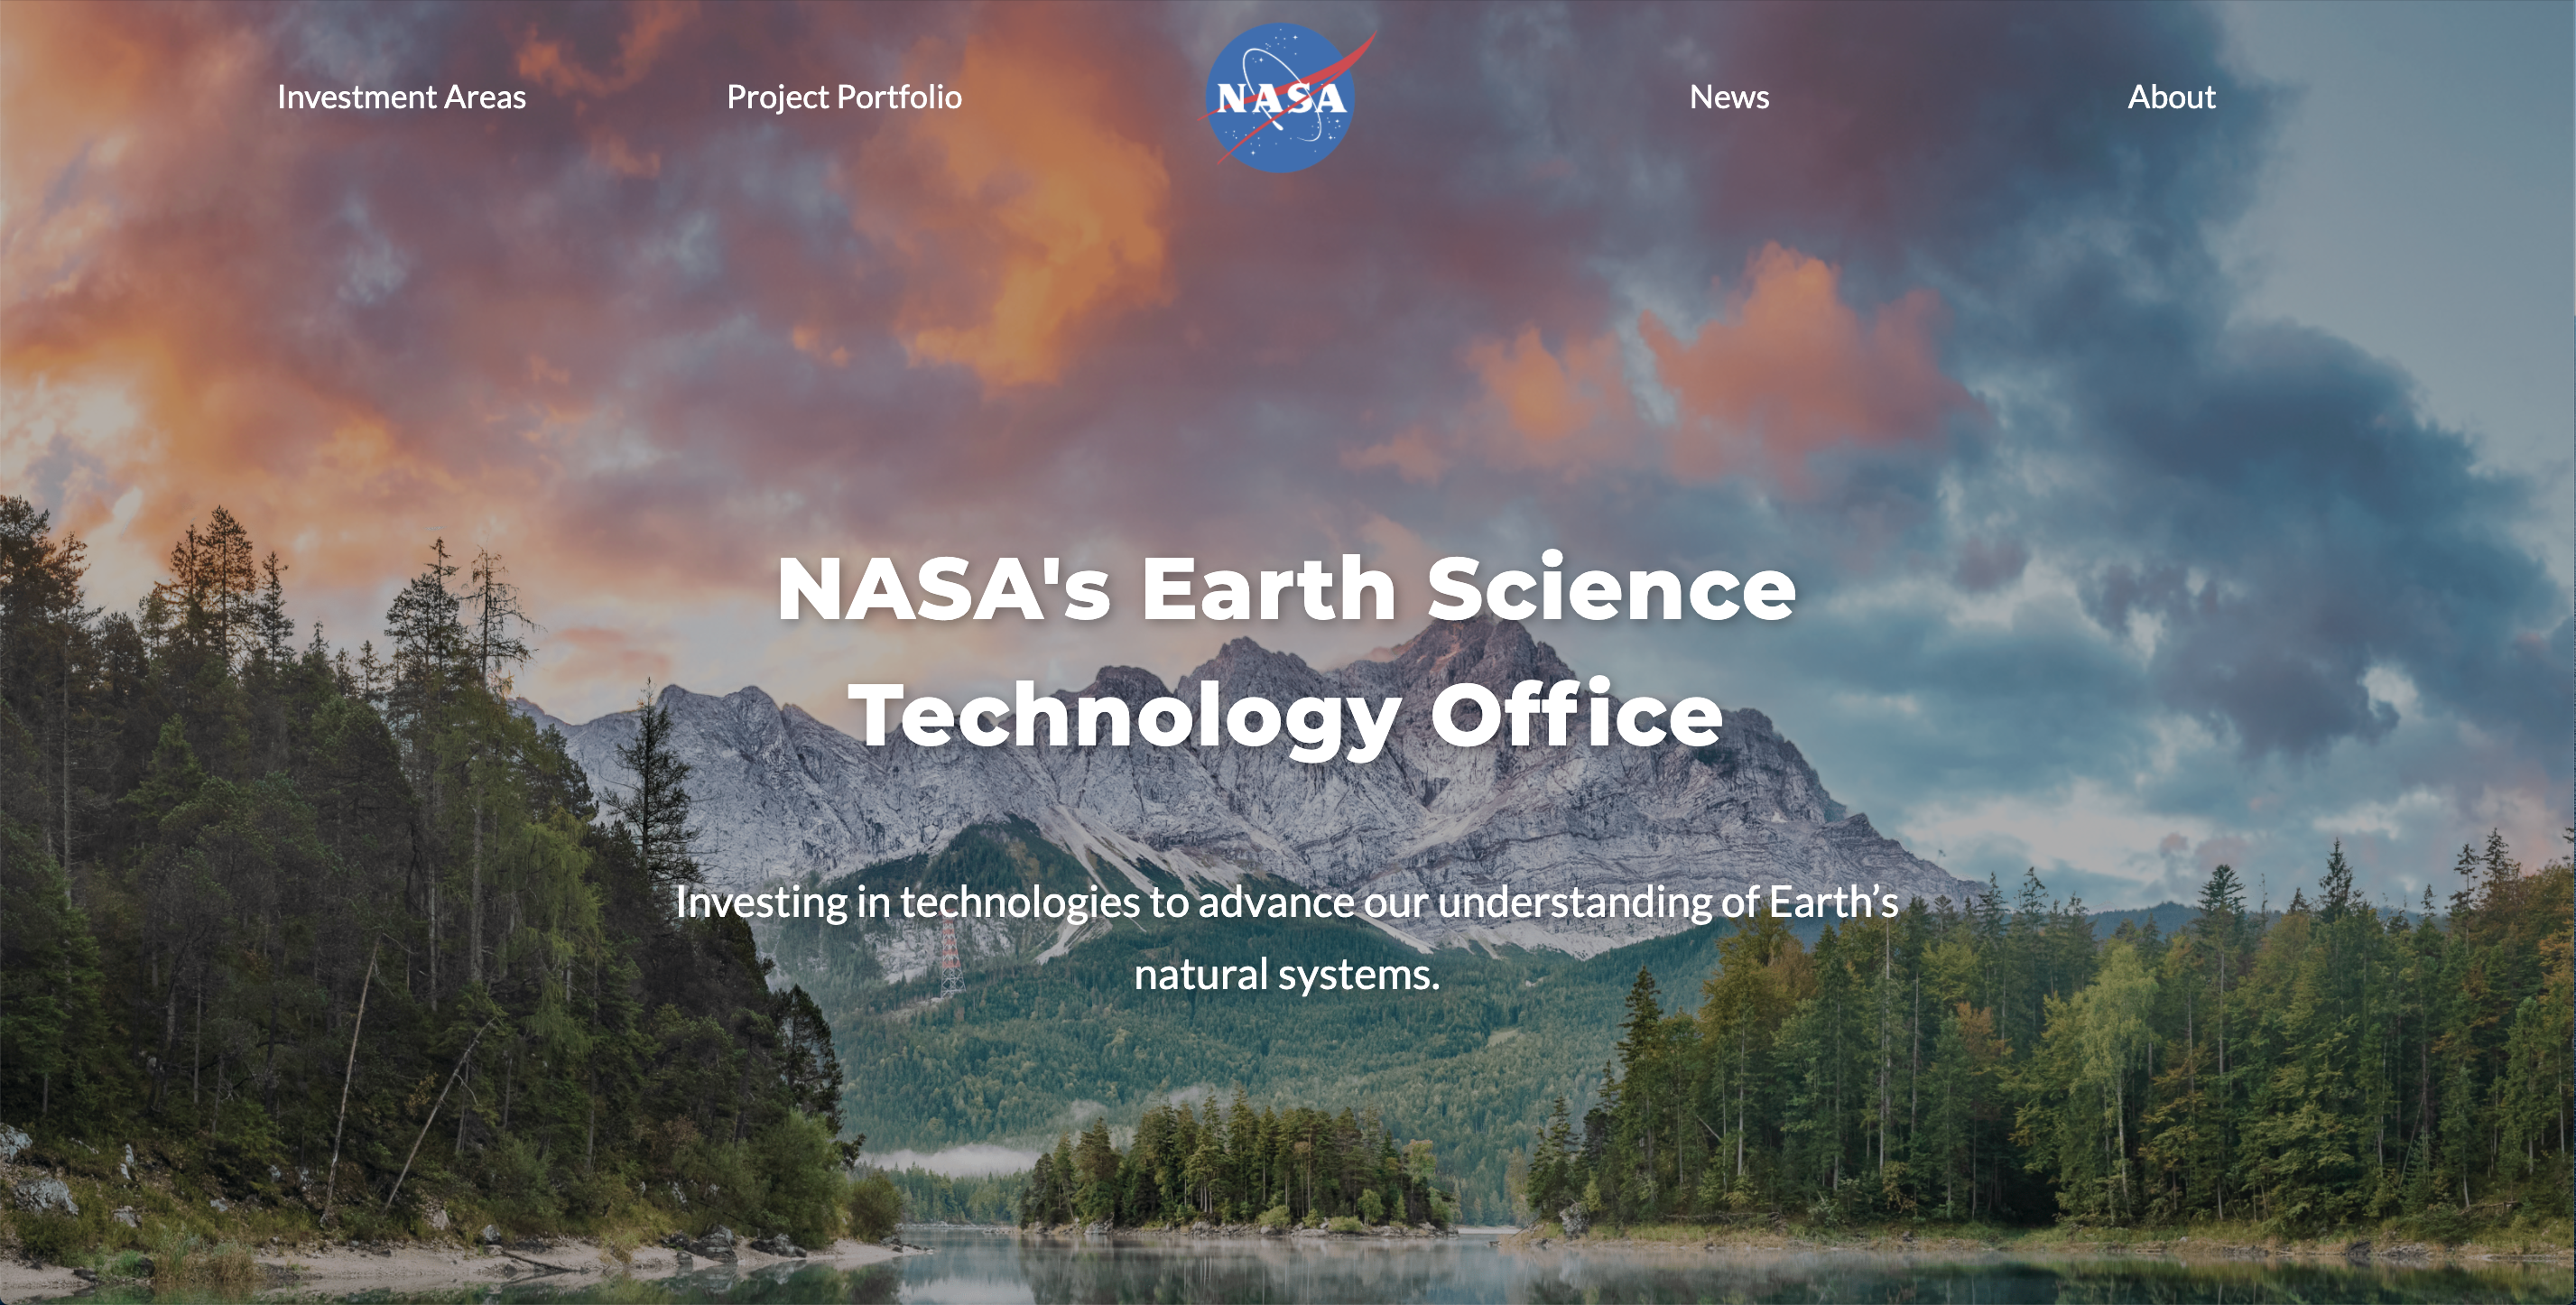 NASA Earth Science and Technology Office after